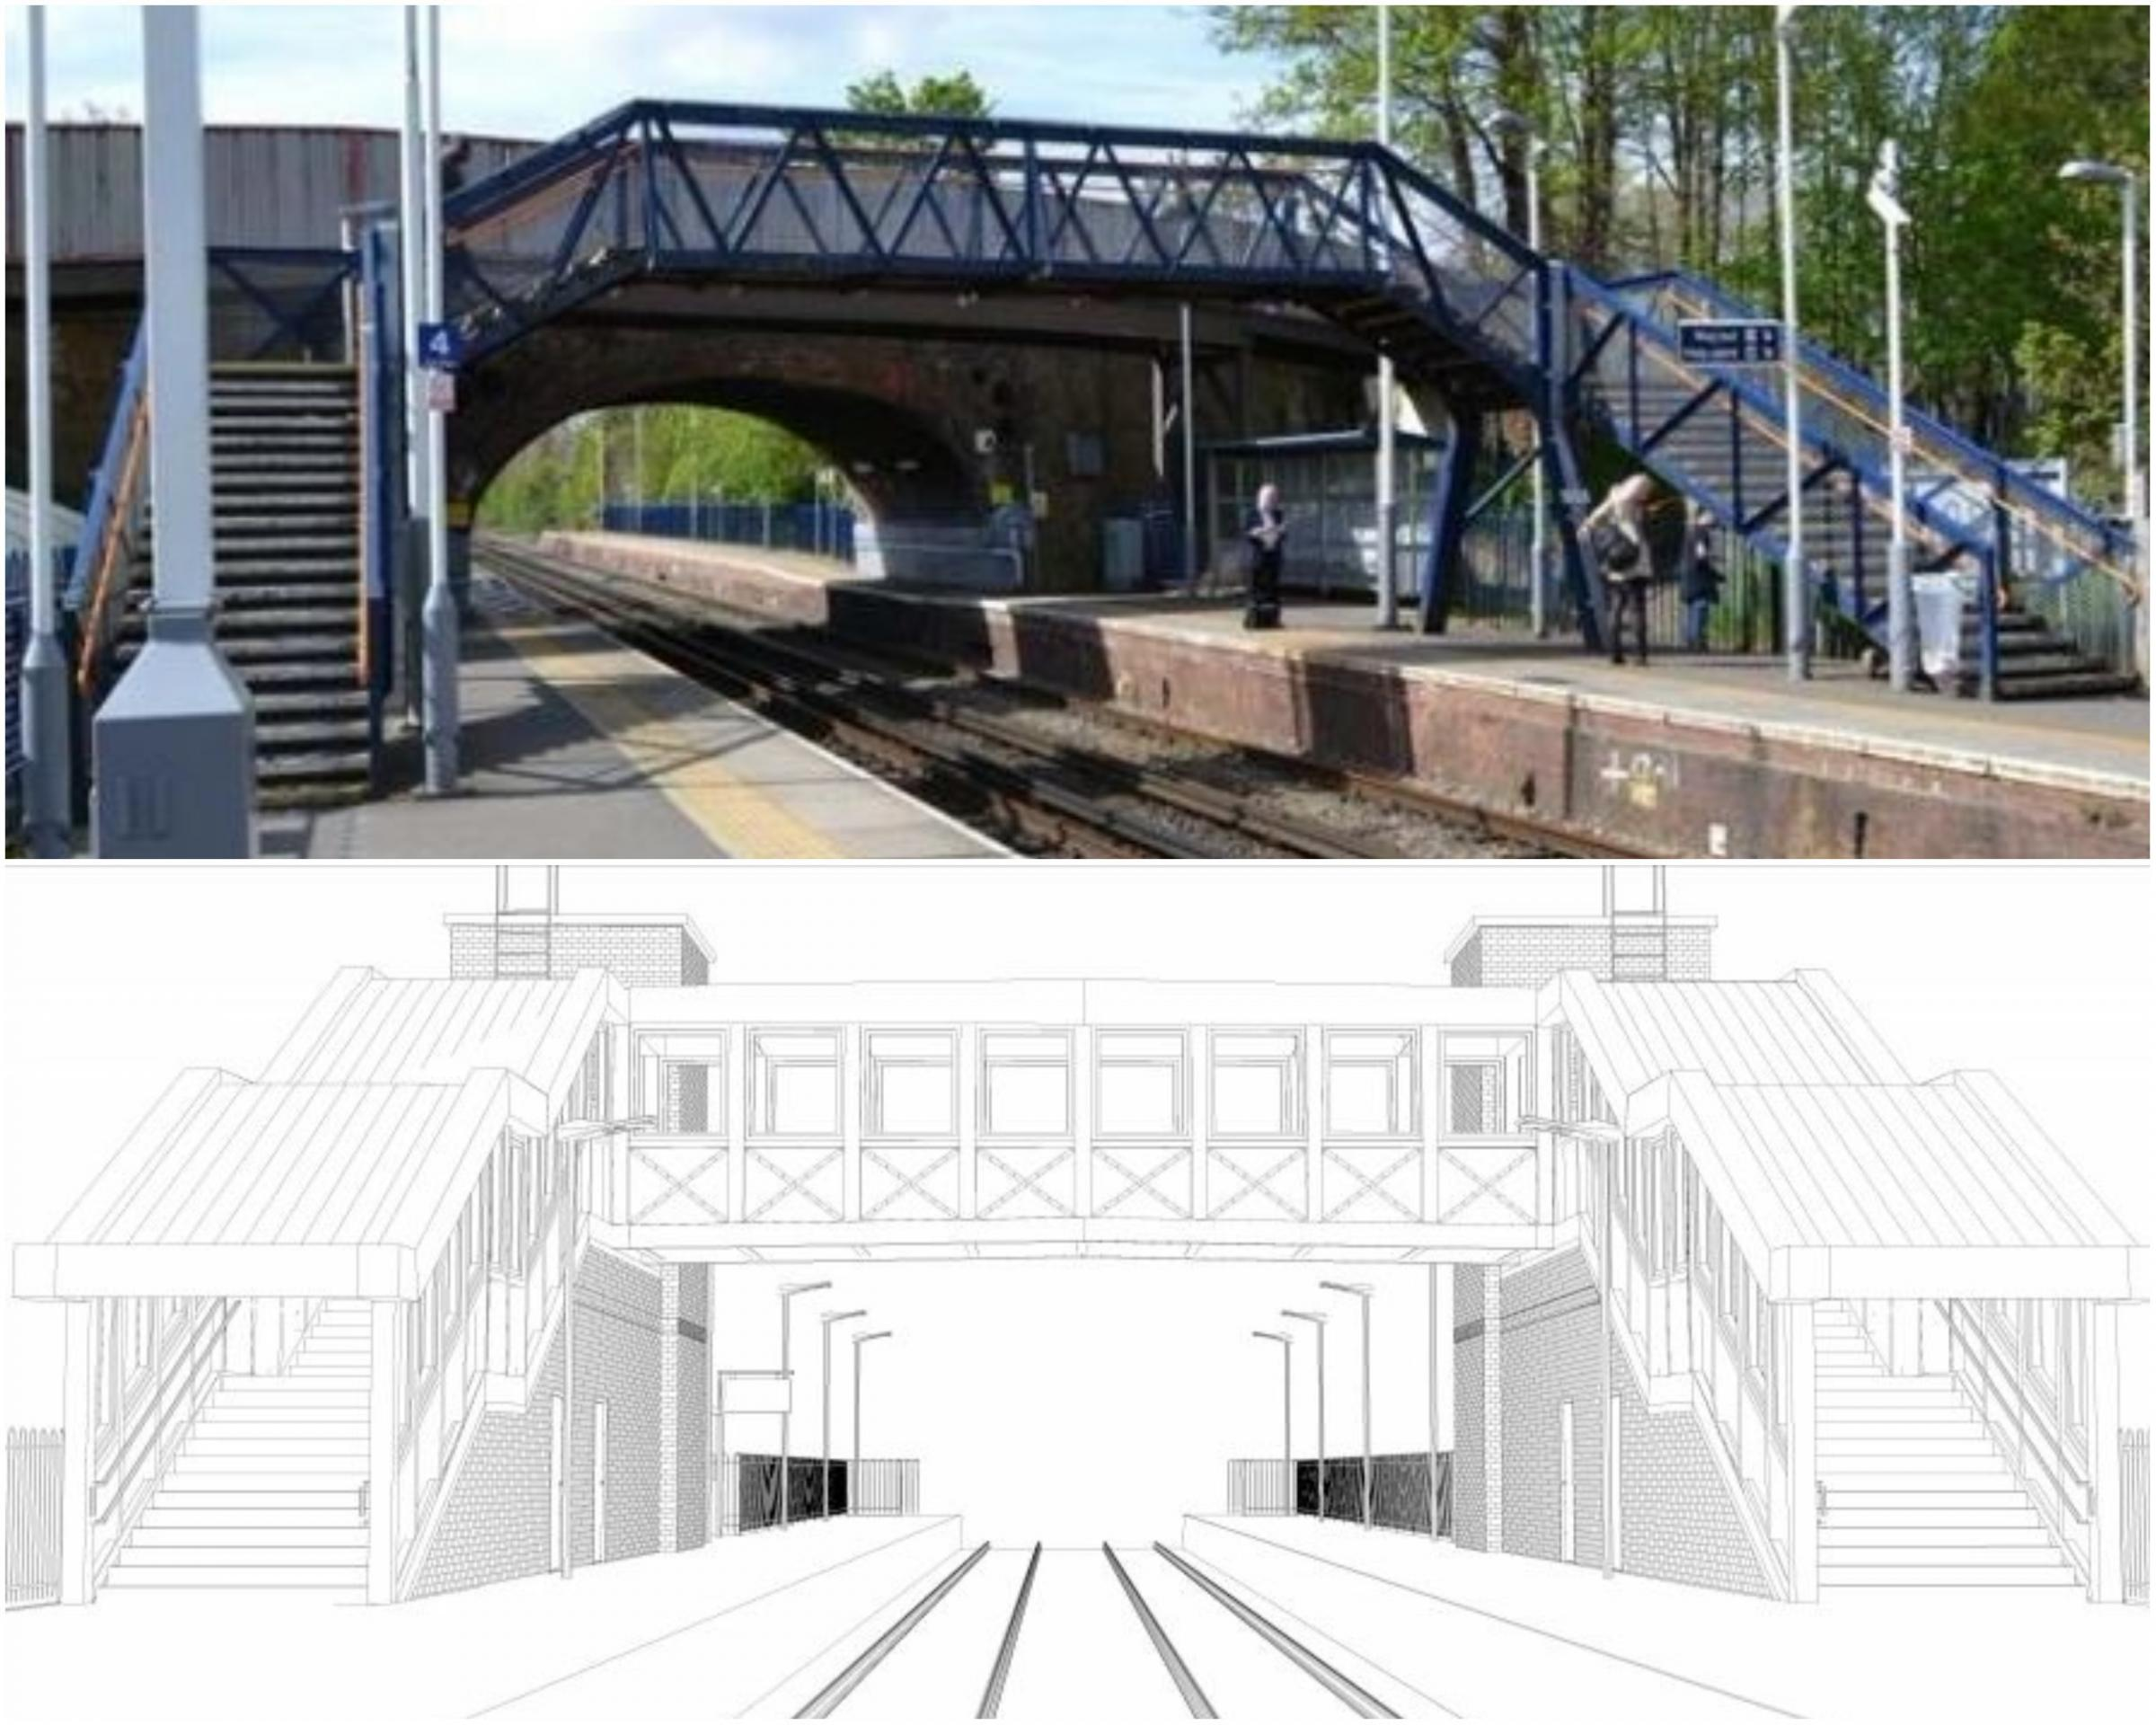 The existing footbridge and plans submitted